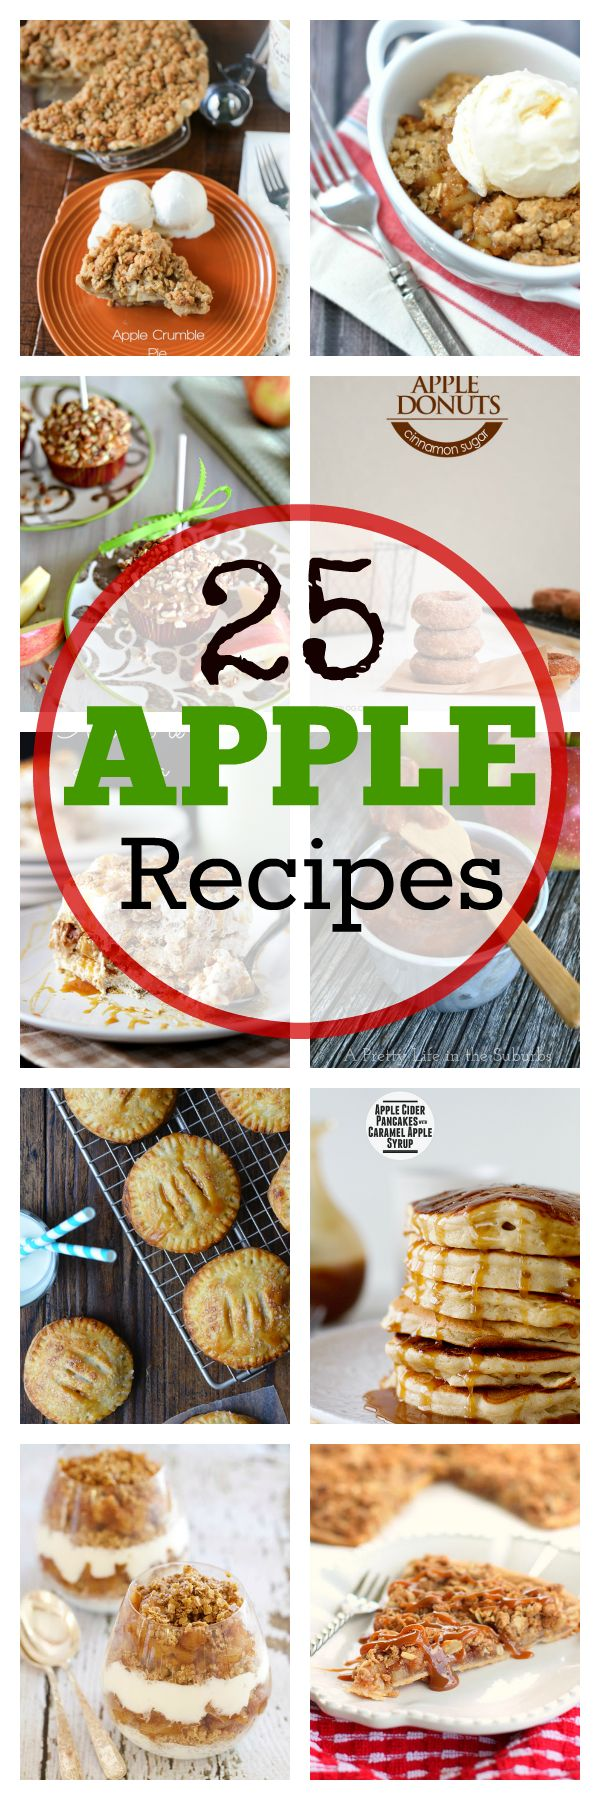 Fall Baking: 25 Things to Bake with Apples (and make your house smell amazing!)